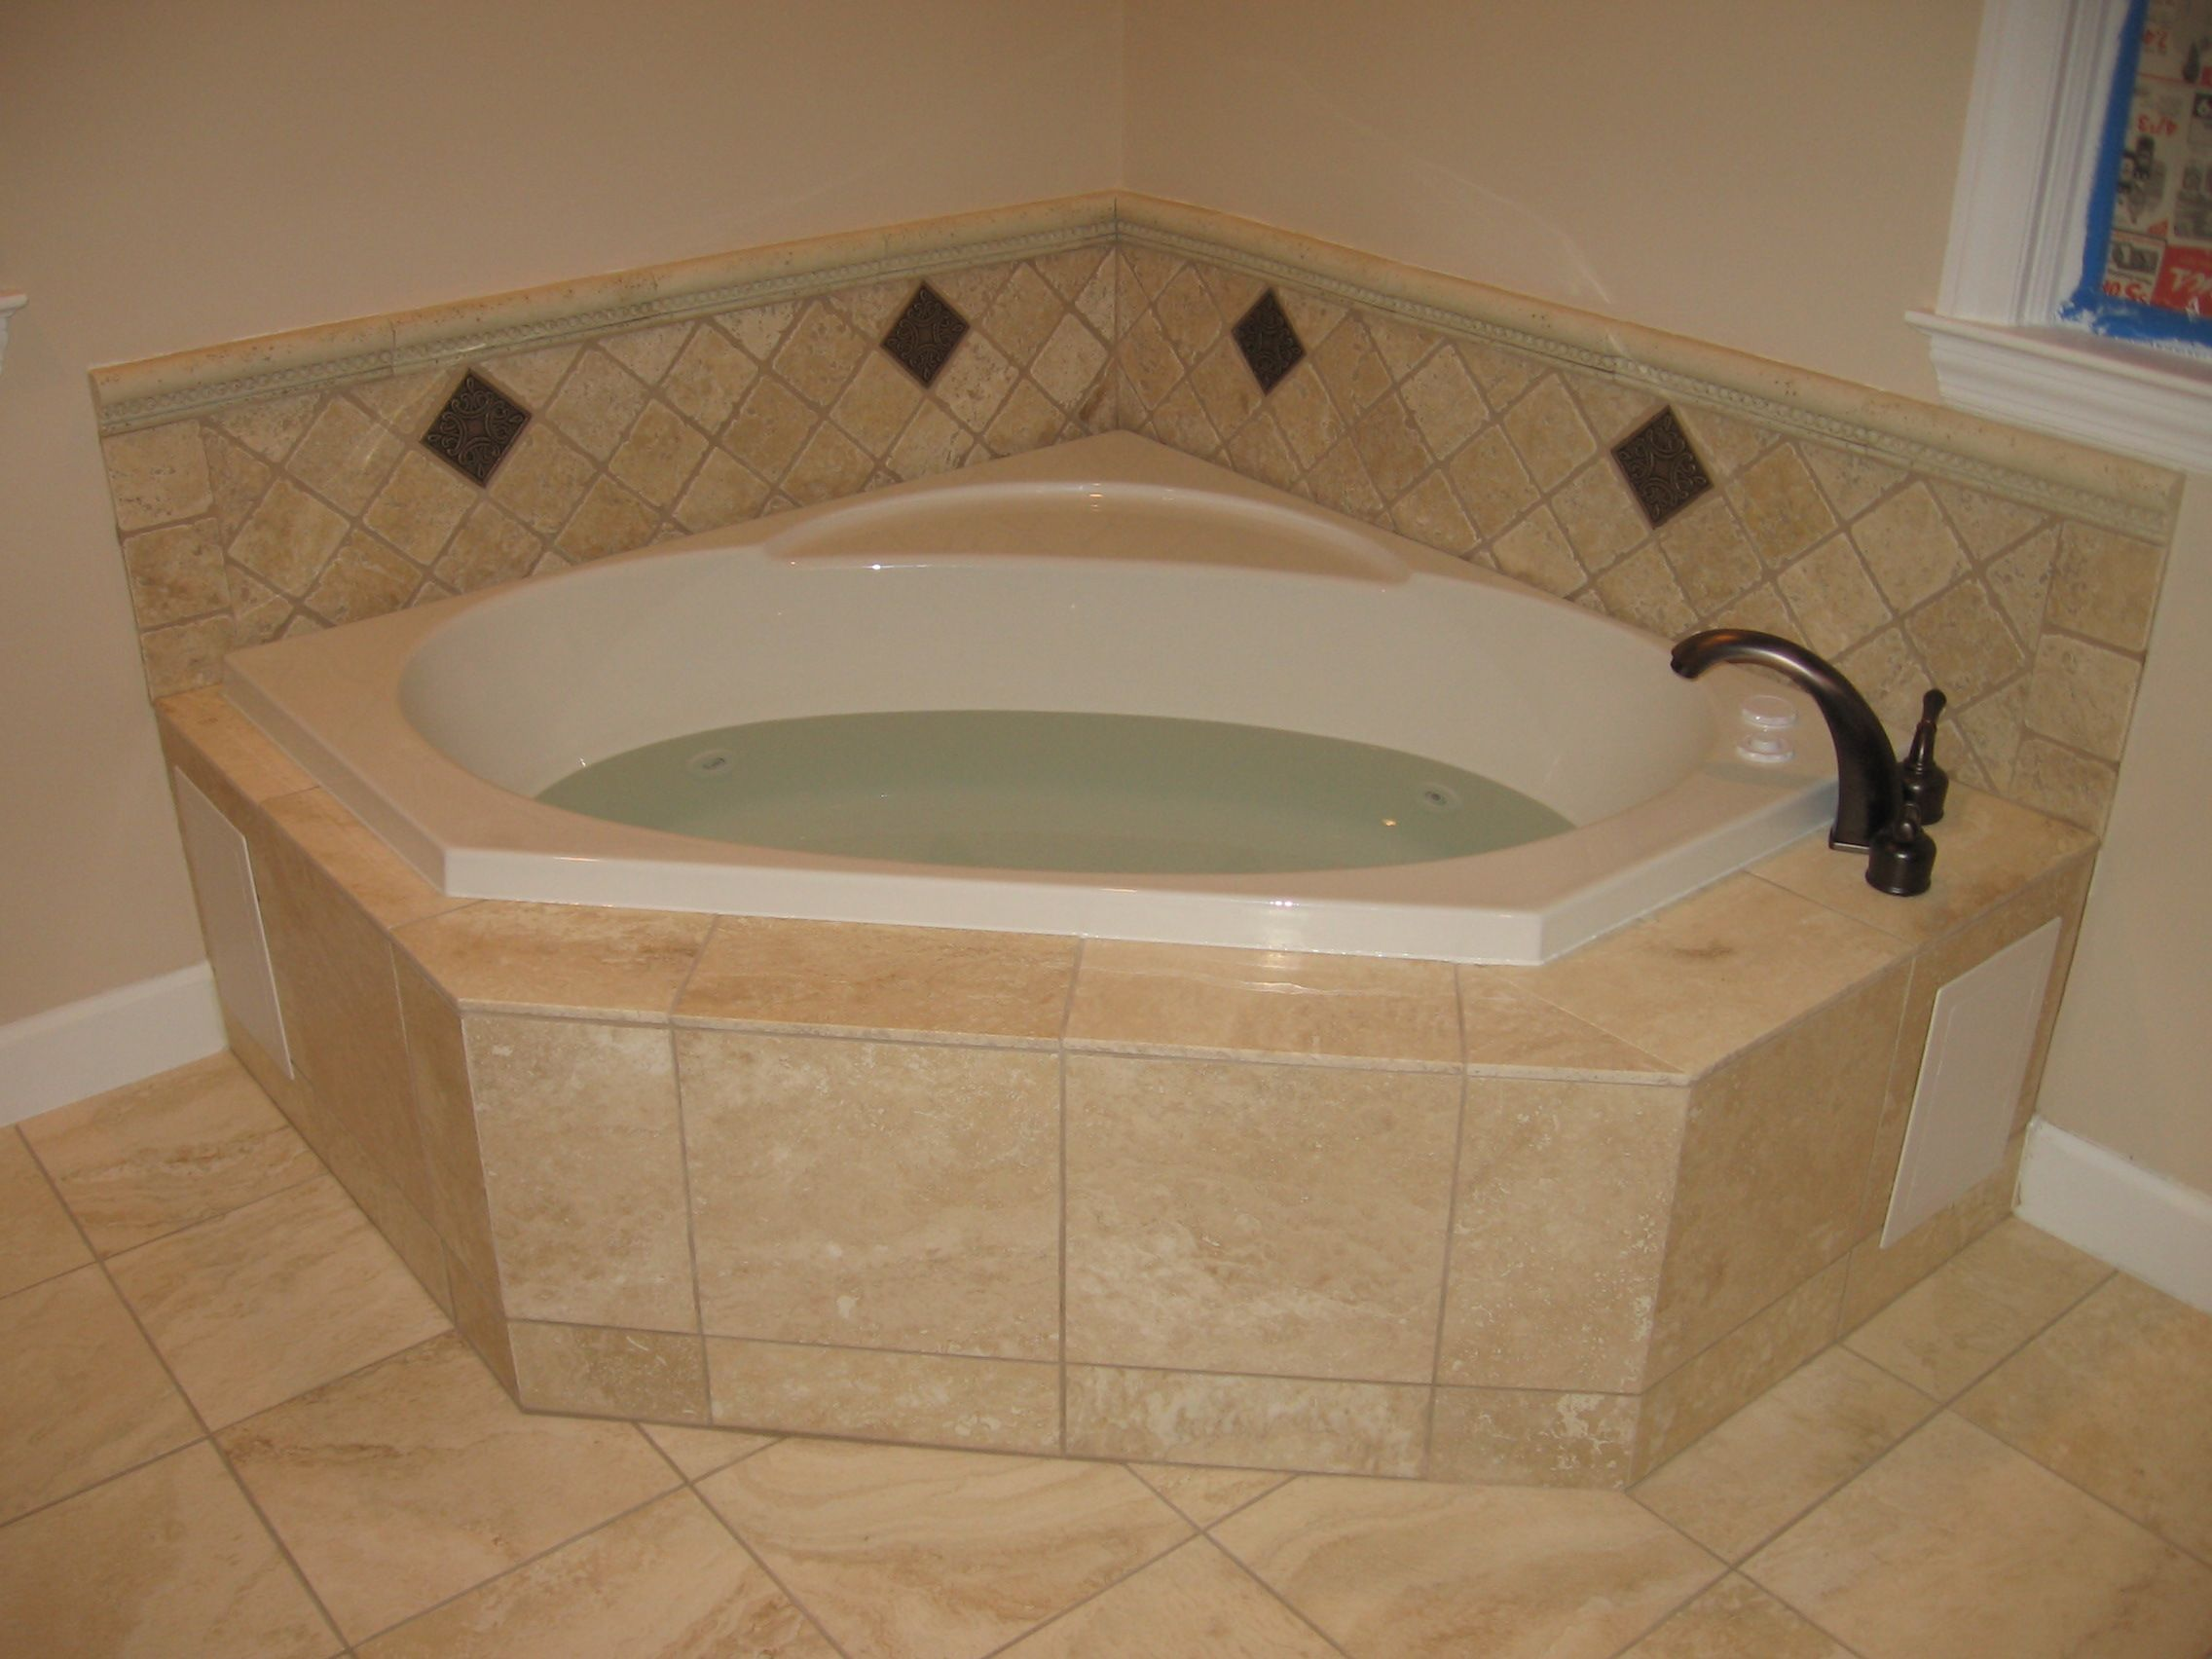 drop in tub whirlpool tub basement ideas picture ideas bathroom ideas